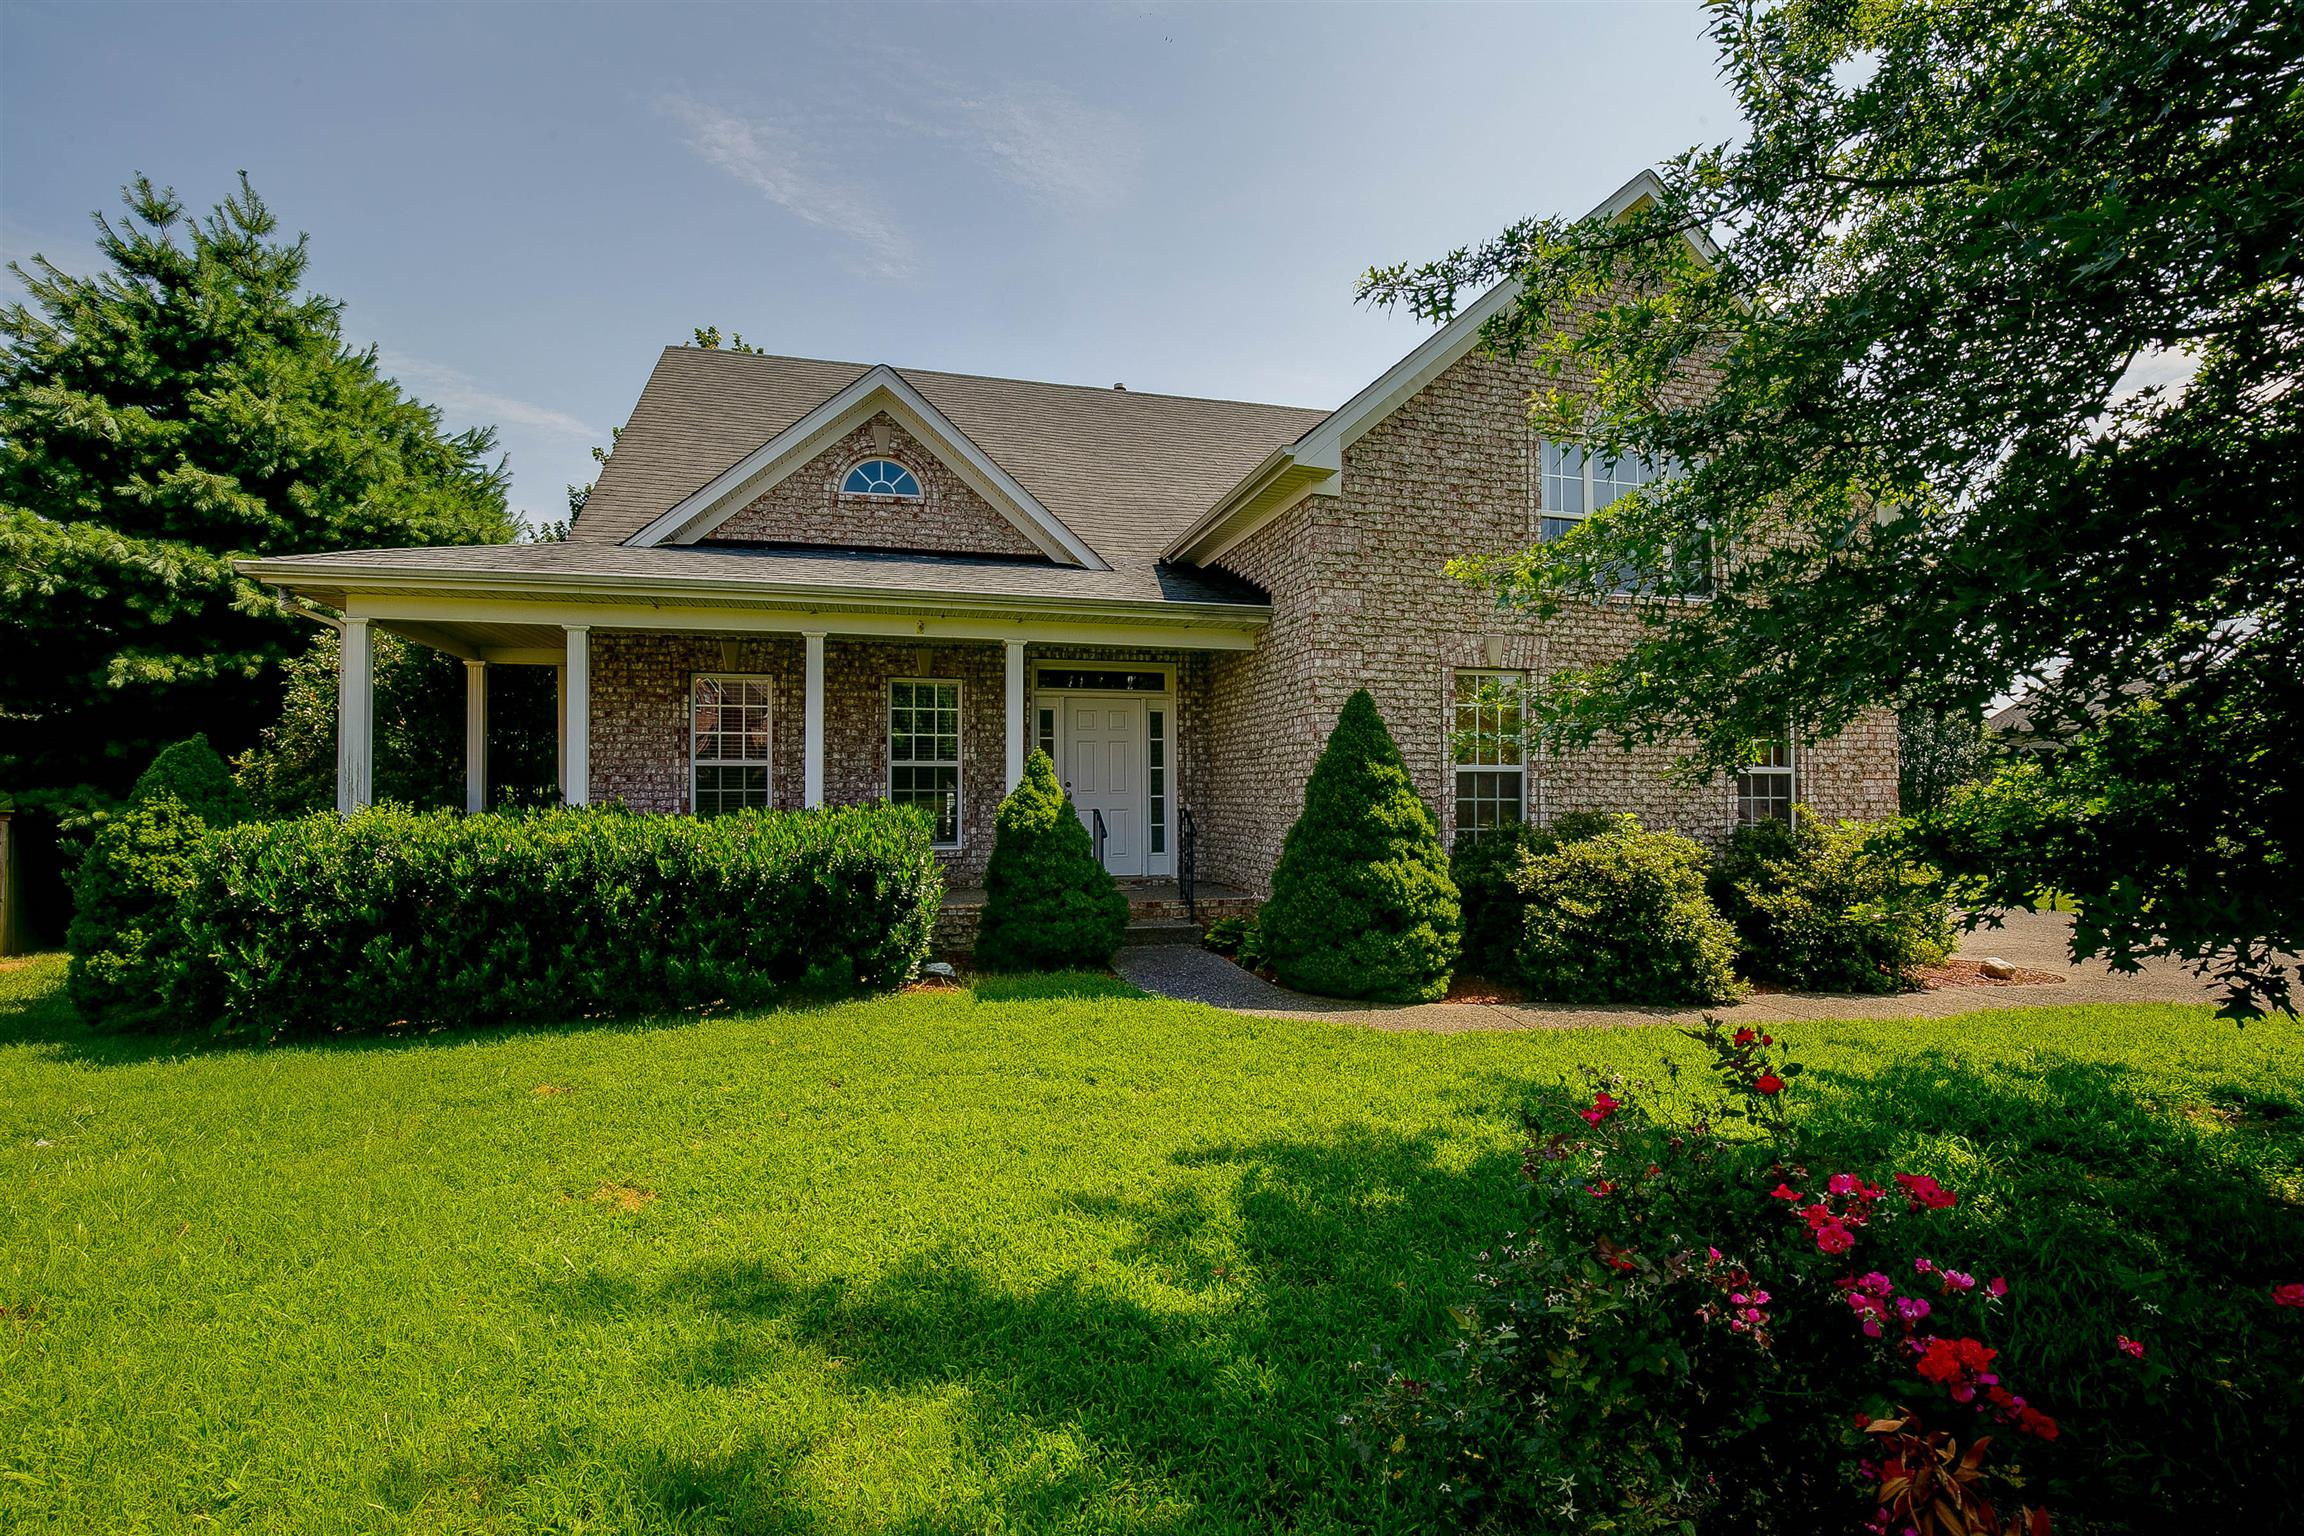 106 Latham Ct, Hendersonville in Sumner County County, TN 37075 Home for Sale